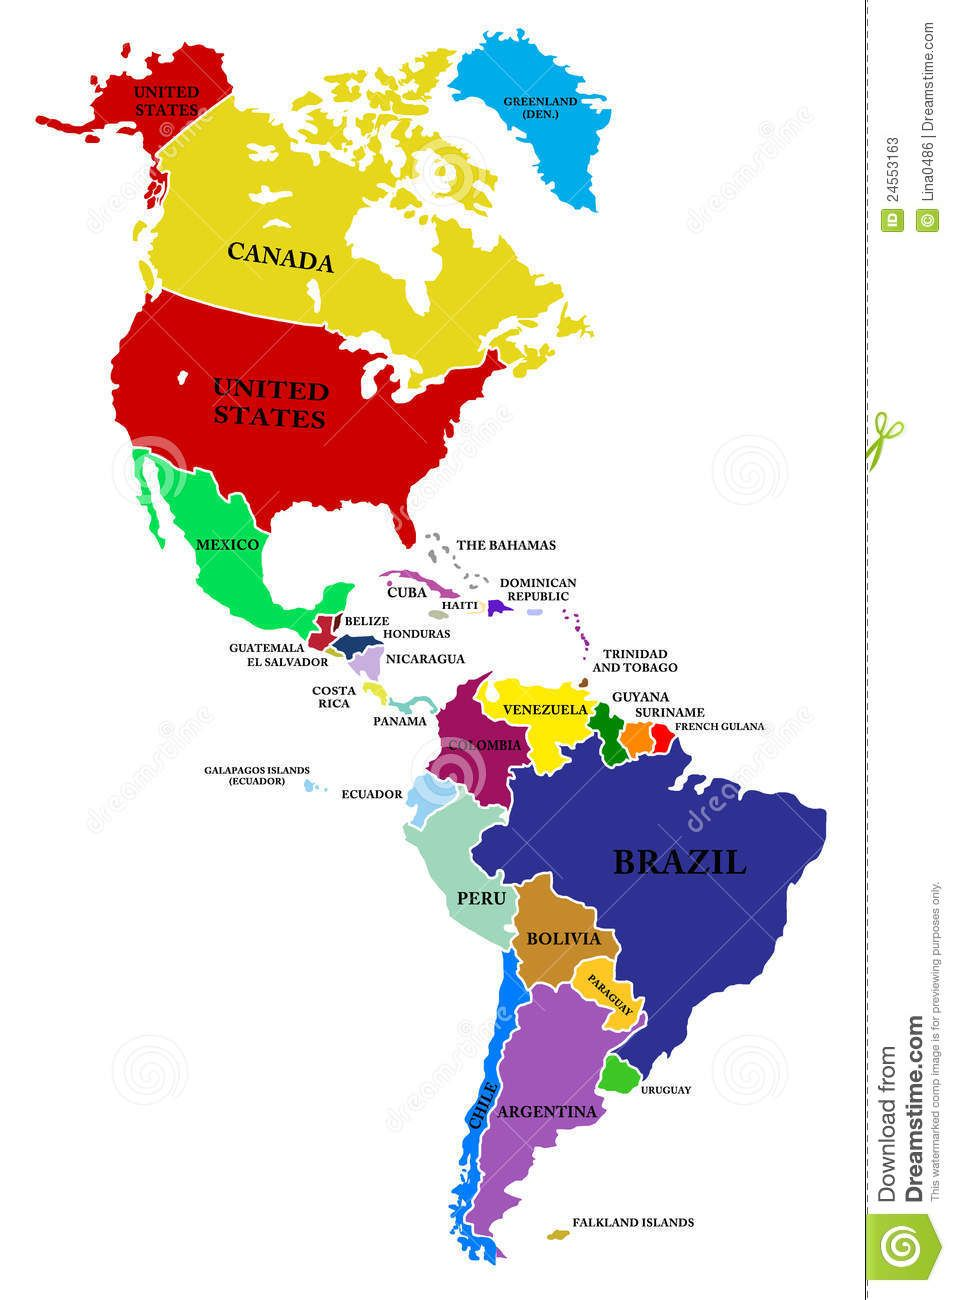 Pin by Hany Samir on South america map | South america map, Map ...